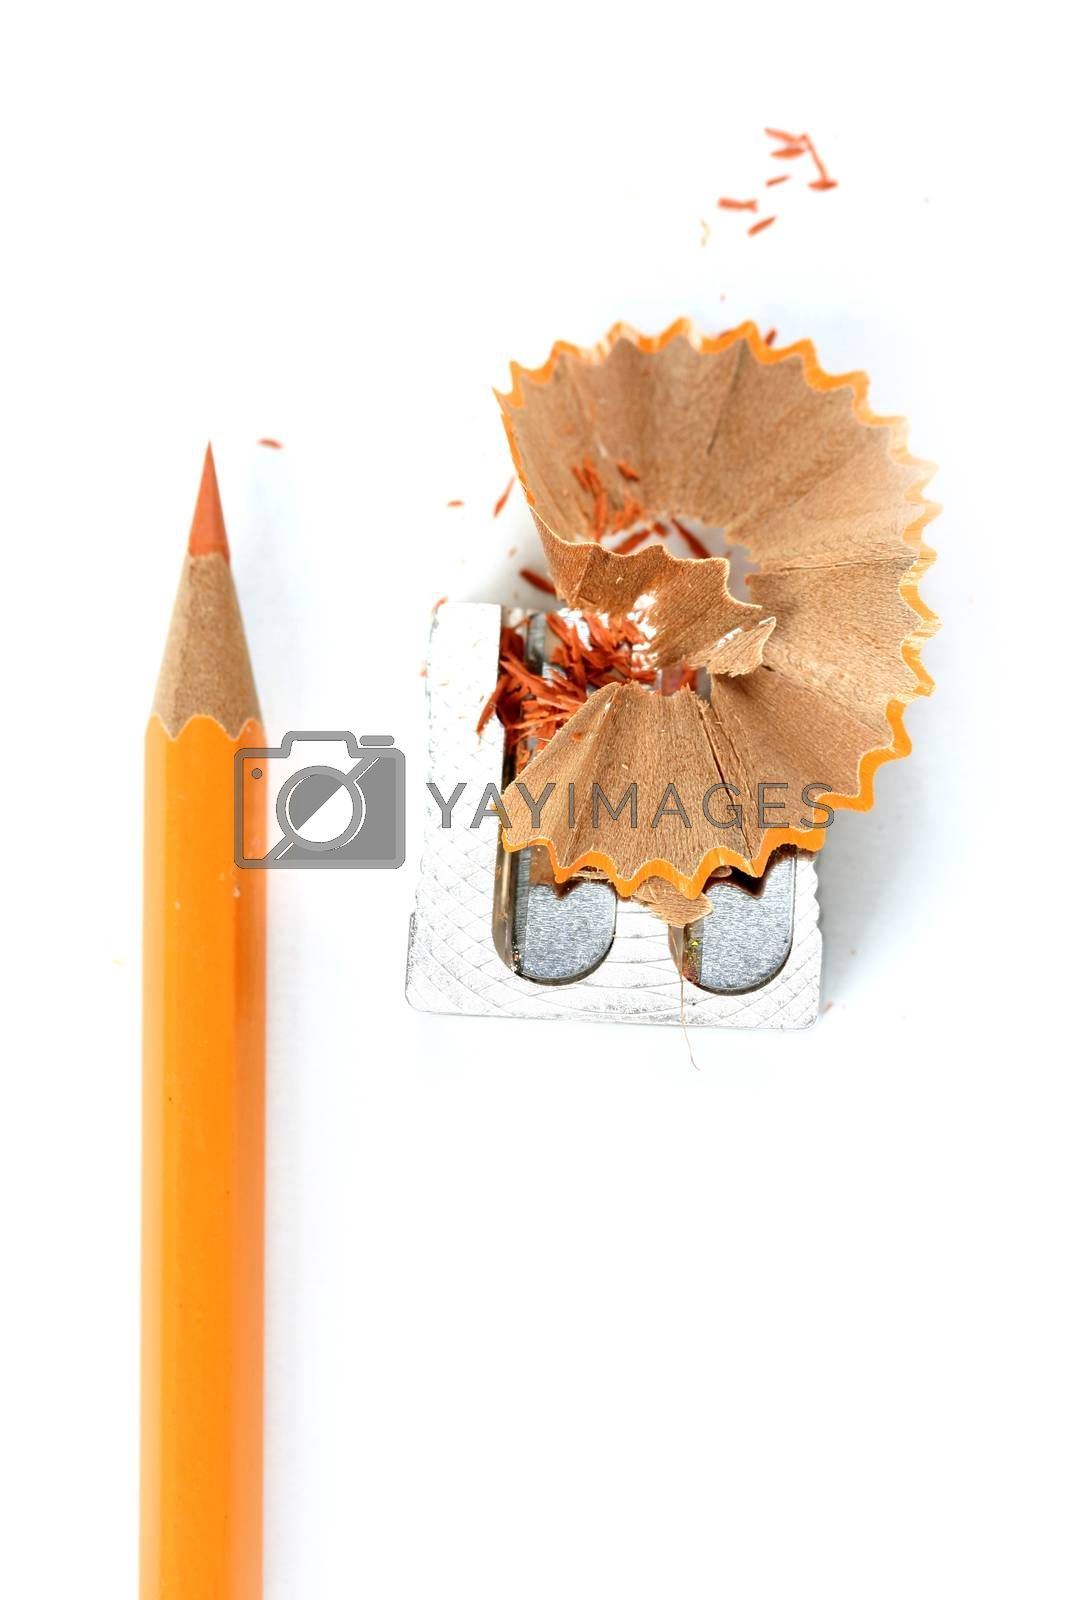 Close-up picture of pencil and sharpener.